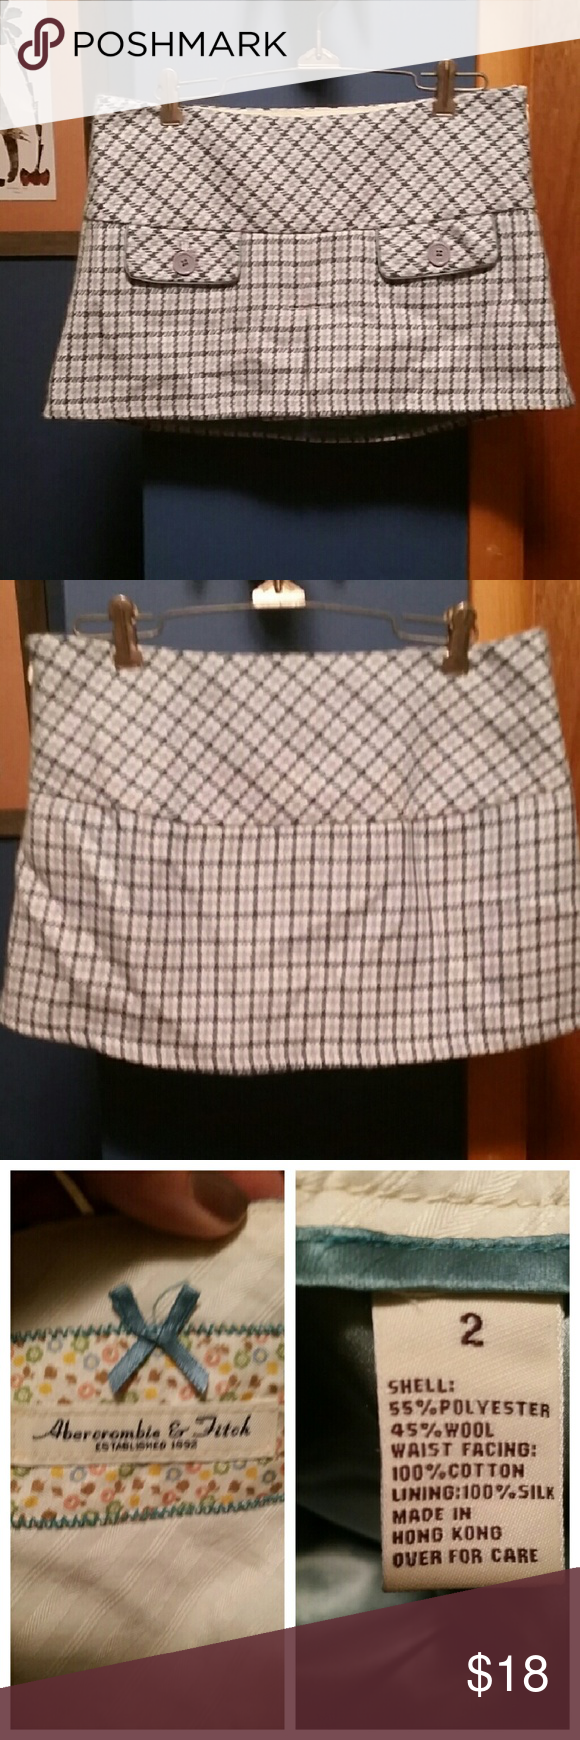 "Abercrombie & Fitch  printed mini skirt In brand new condition. 11"" from hip to hem. * Abercrombie & Fitch Skirts Mini"